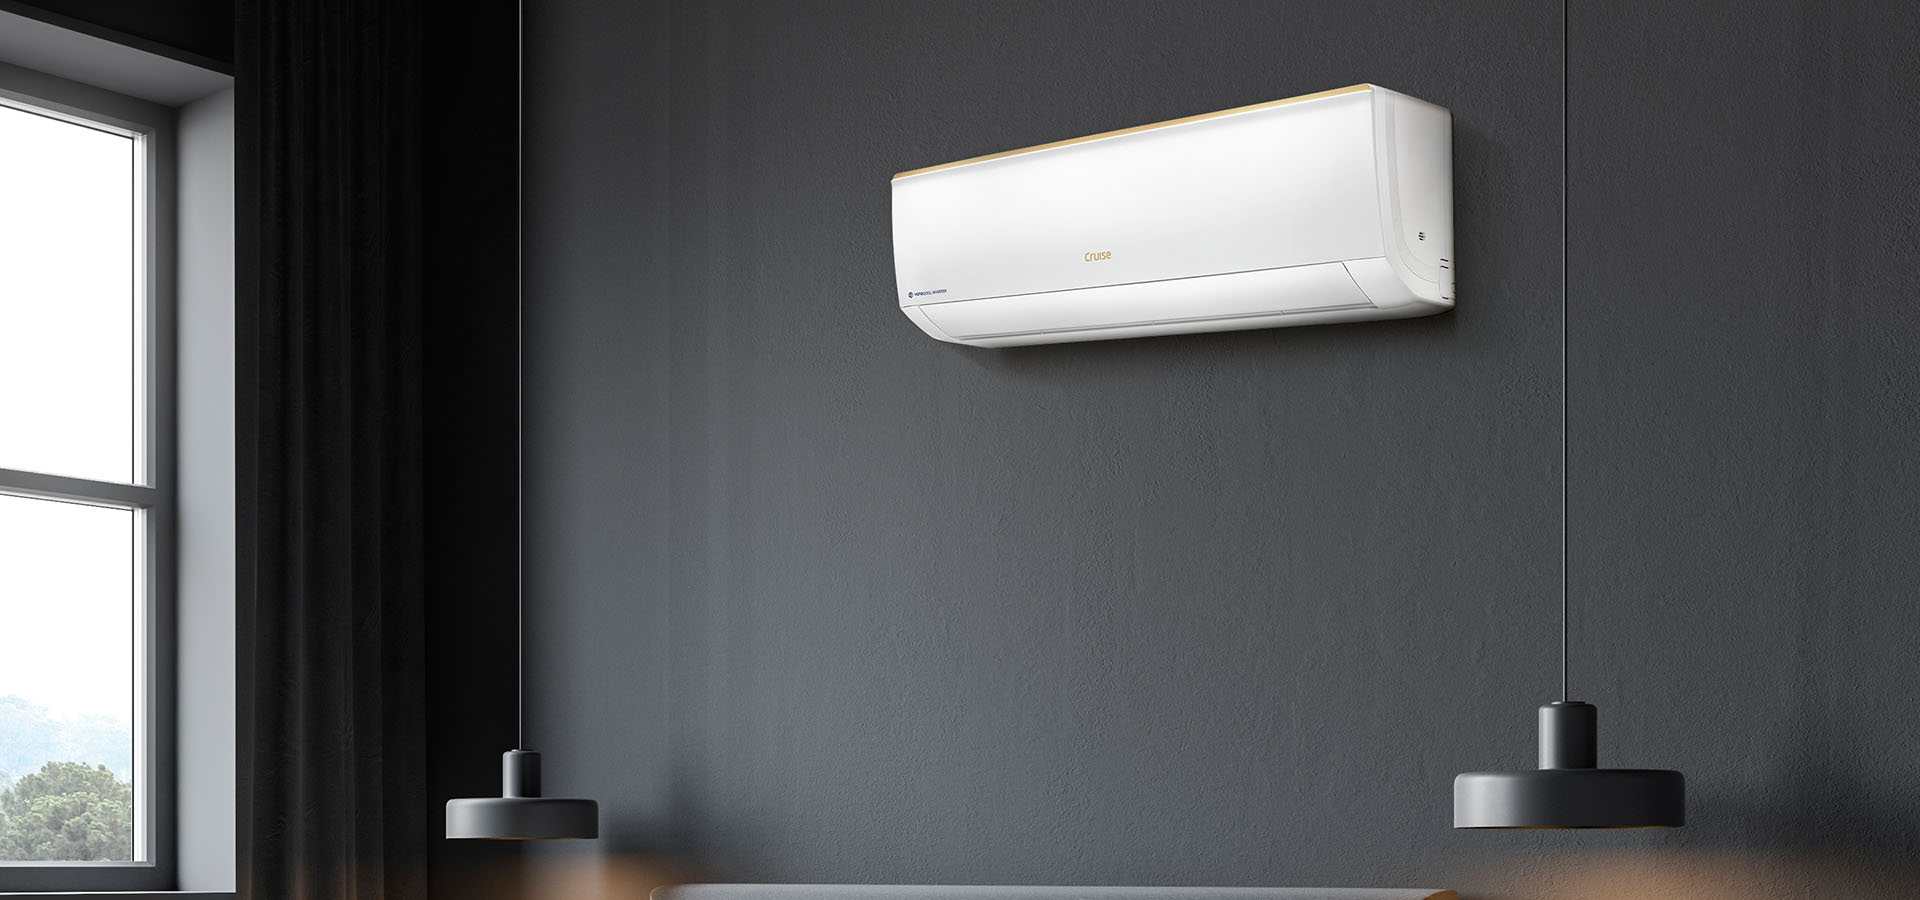 How To Make Your Window Air Conditioner Appear Like One Million Bucks